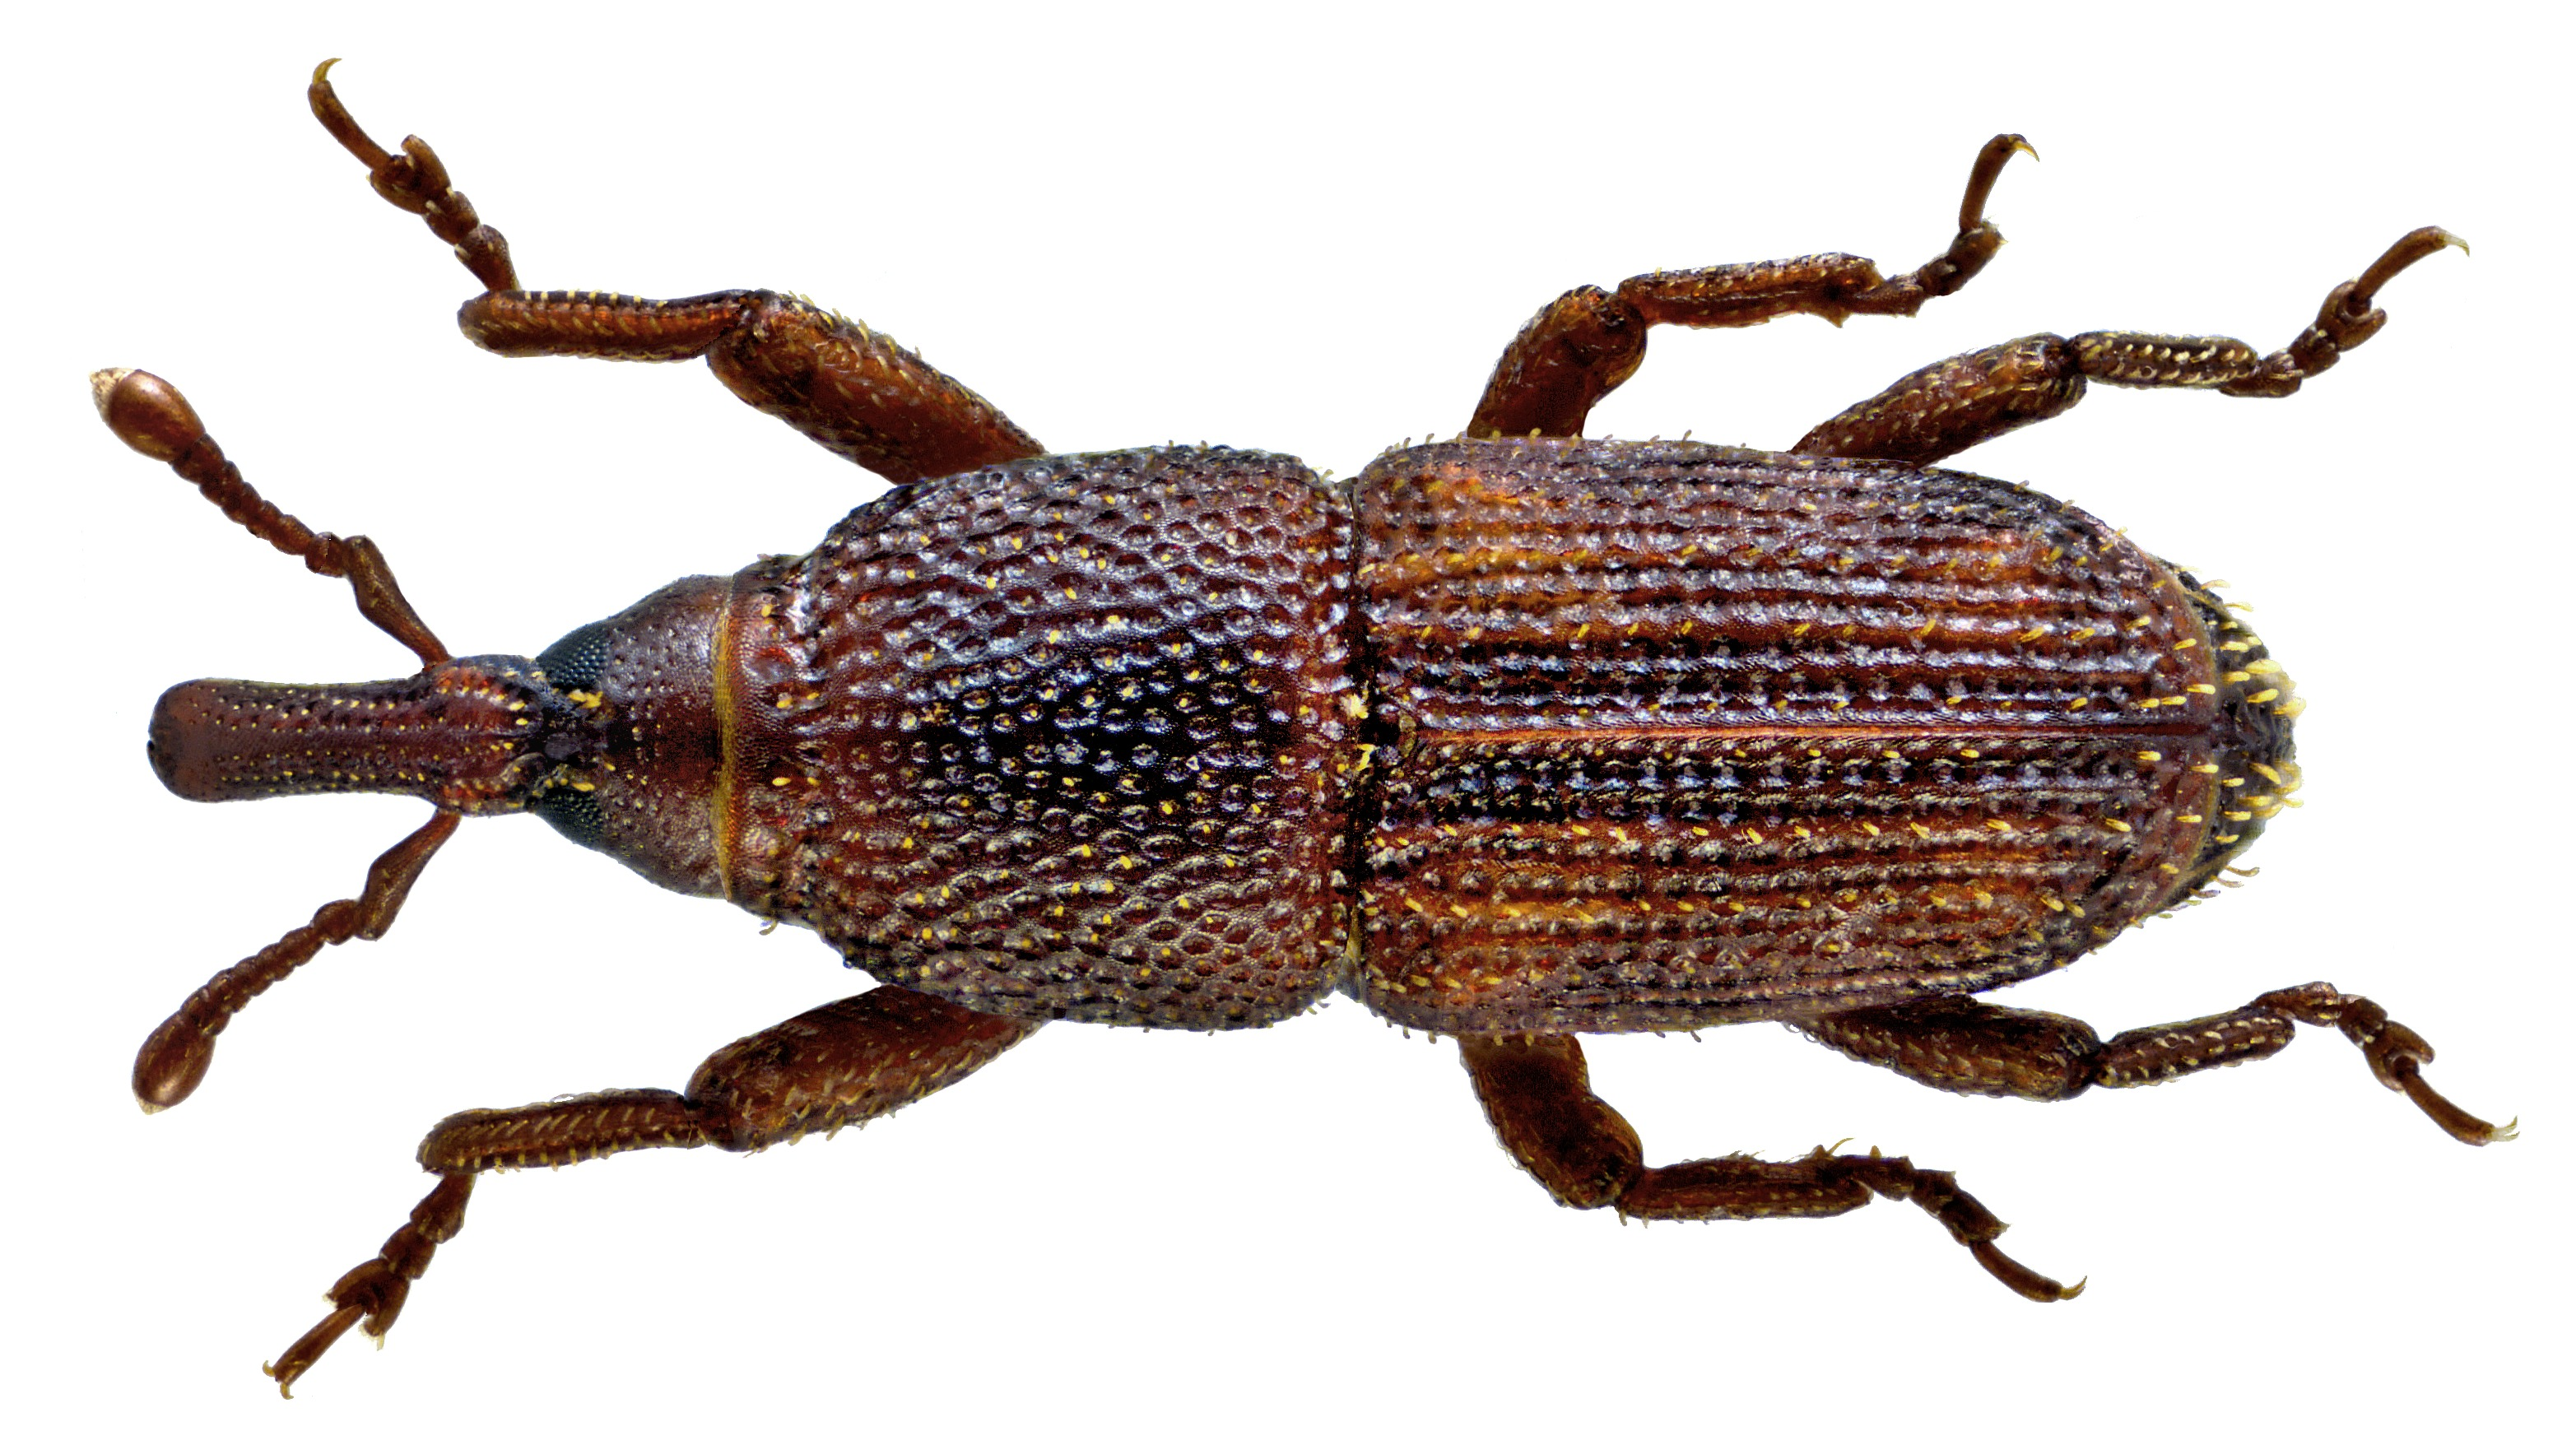 Image of rice weevil